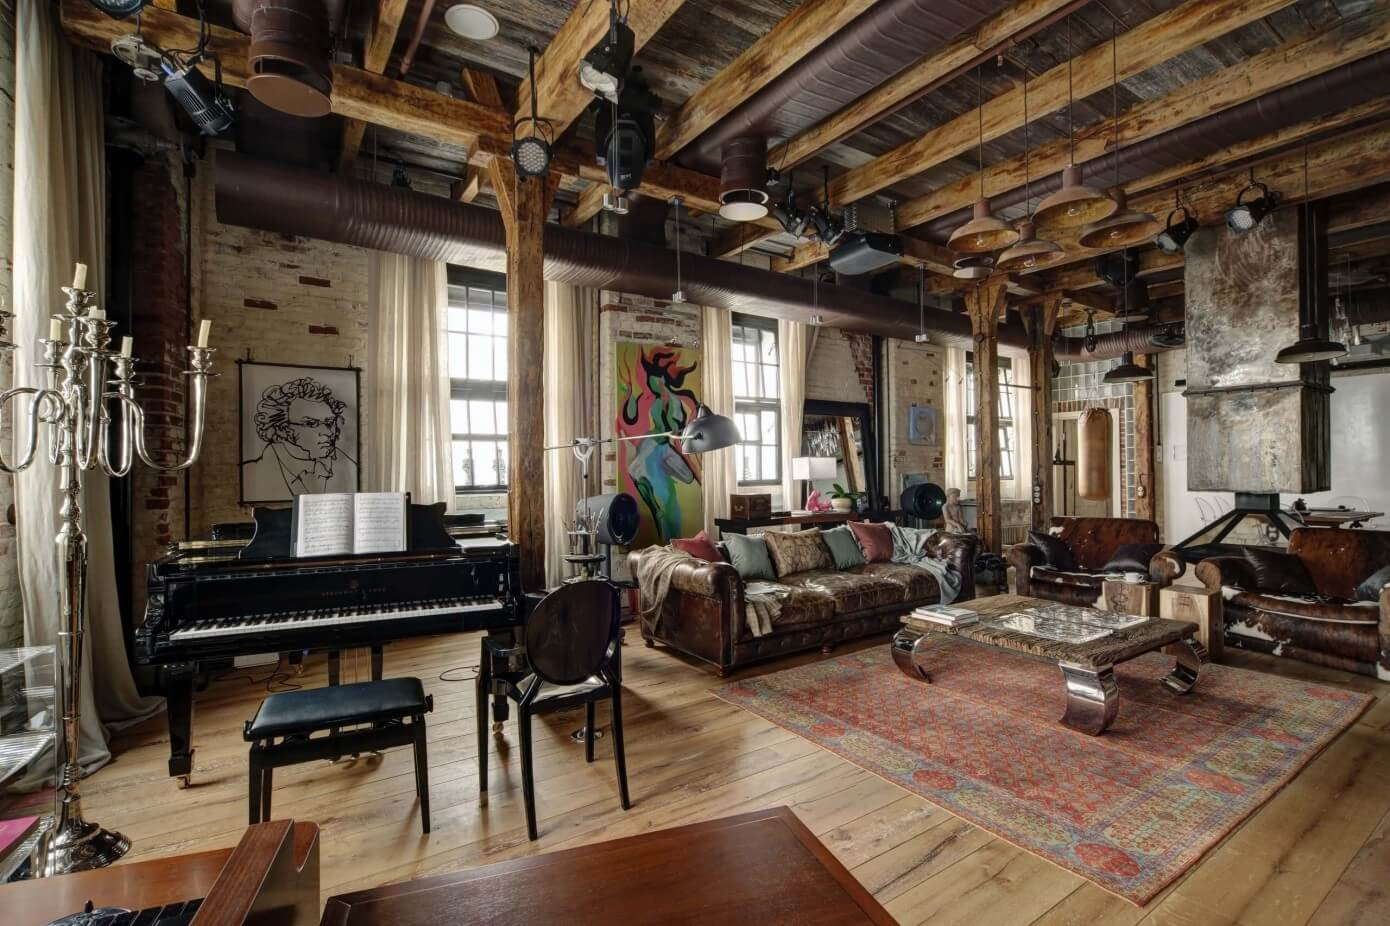 midlife crisis loft by lev lugovskoy homeadore